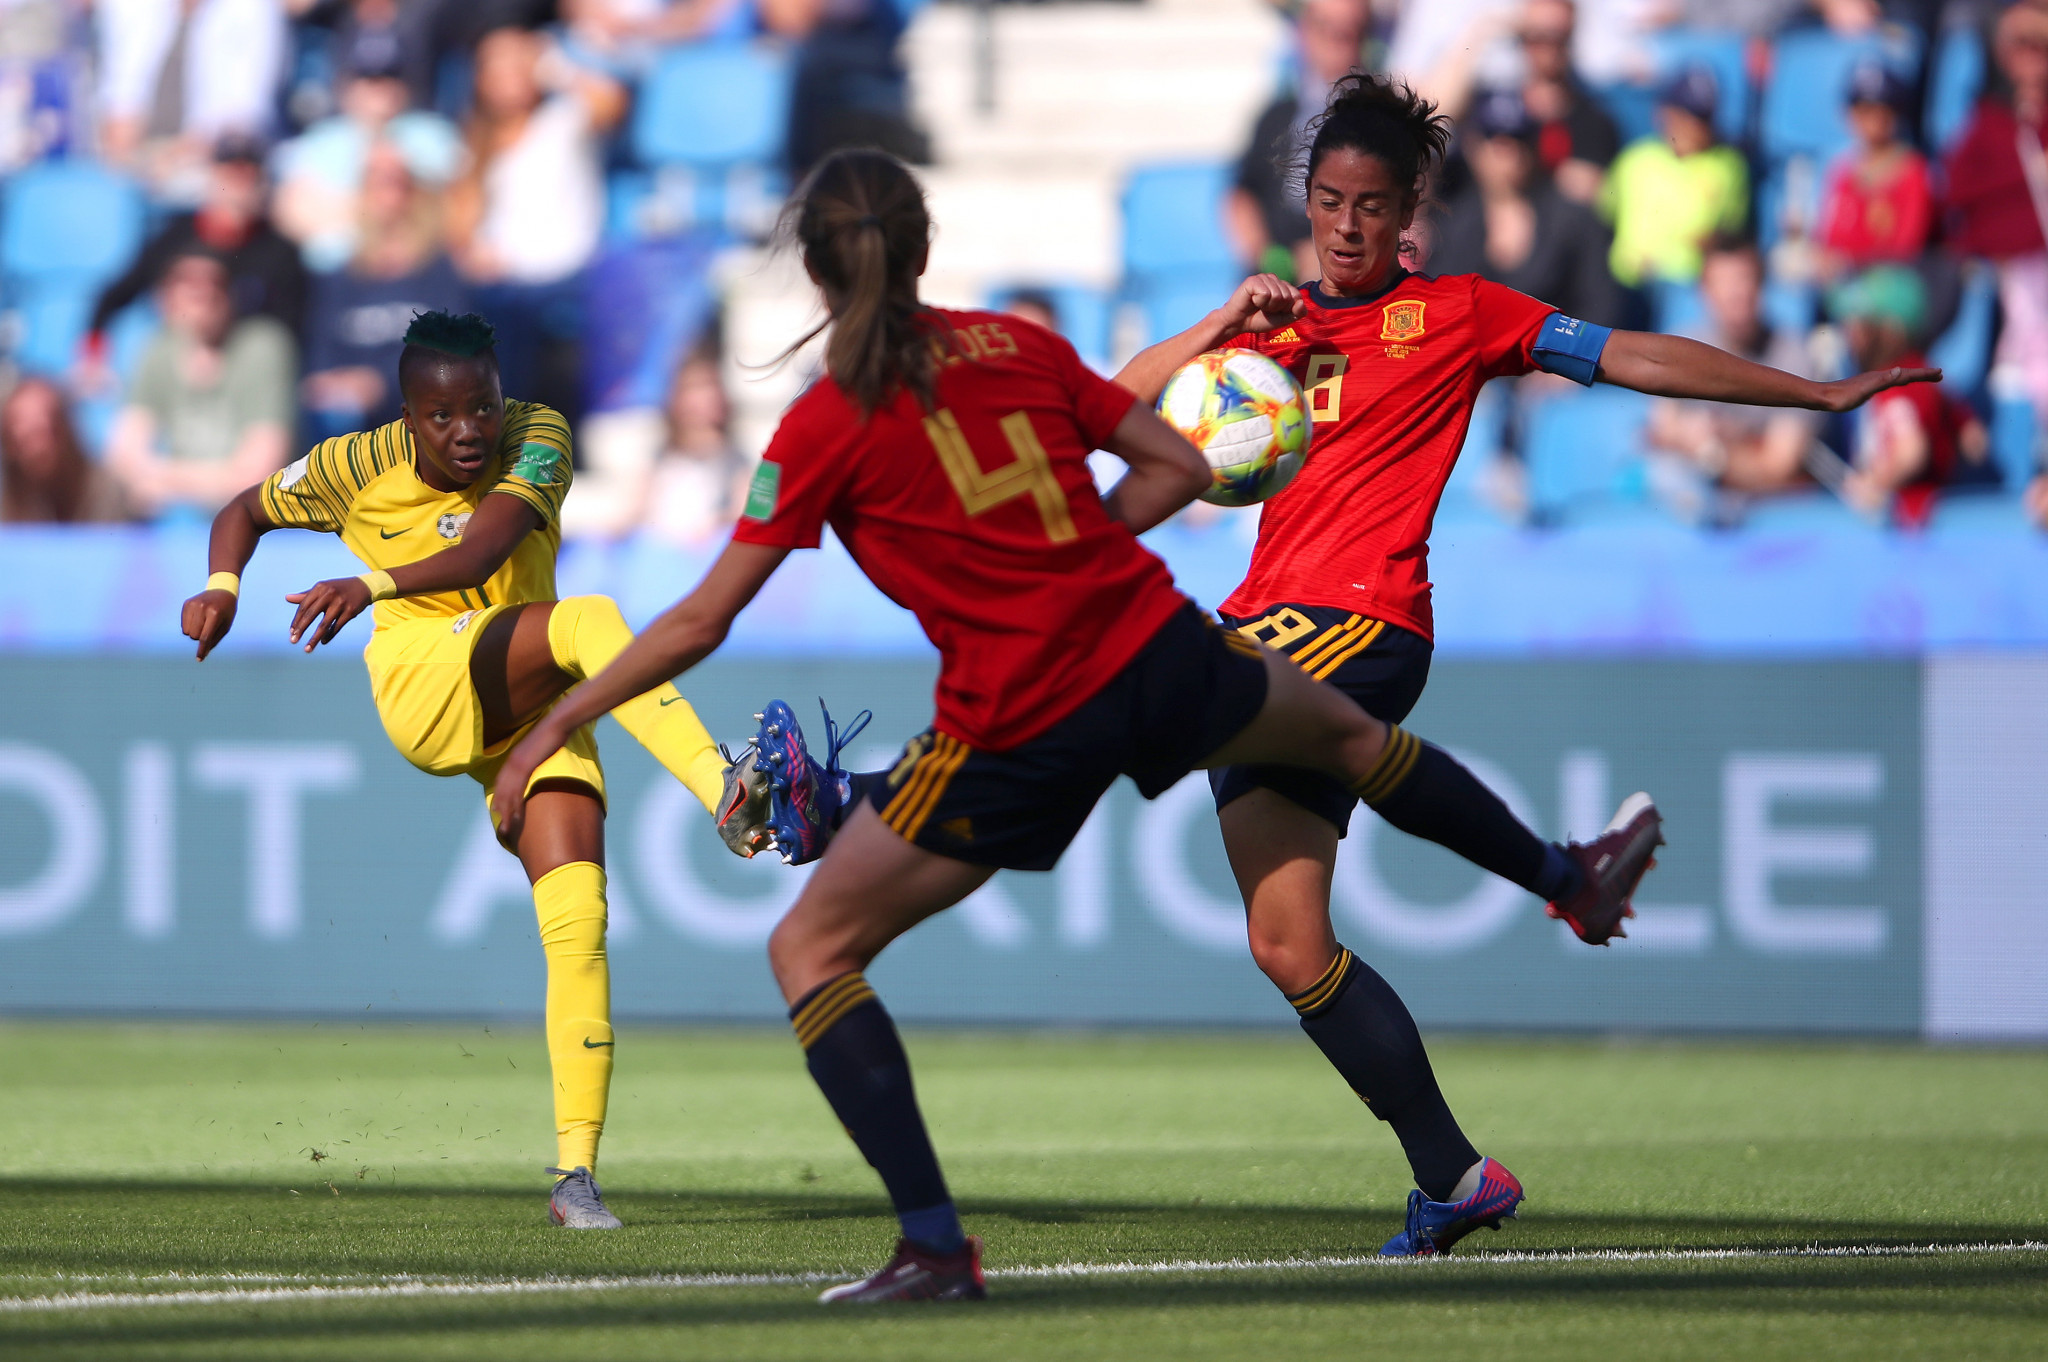 In the Group B clash between South Africa and Spain, Thembi Kgatlana scored an impressive opener for South Africa ©Getty Images